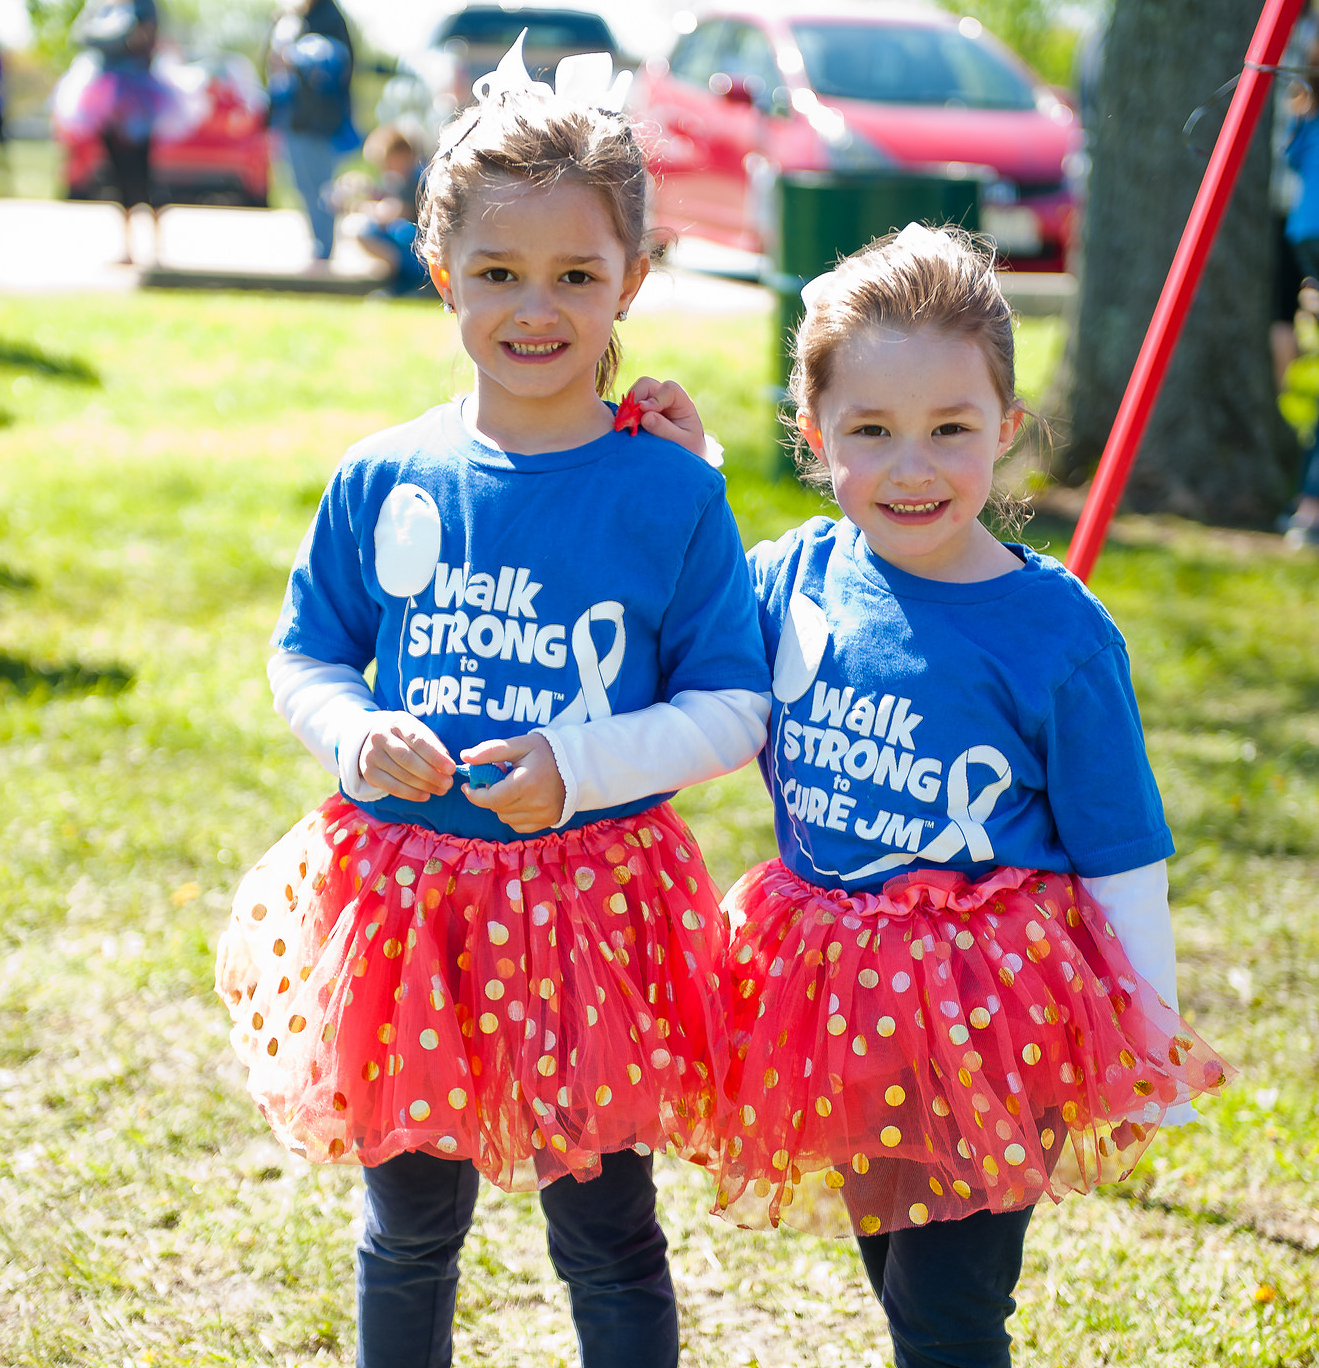 Walk Strong to Cure JM - Massachusetts Photo